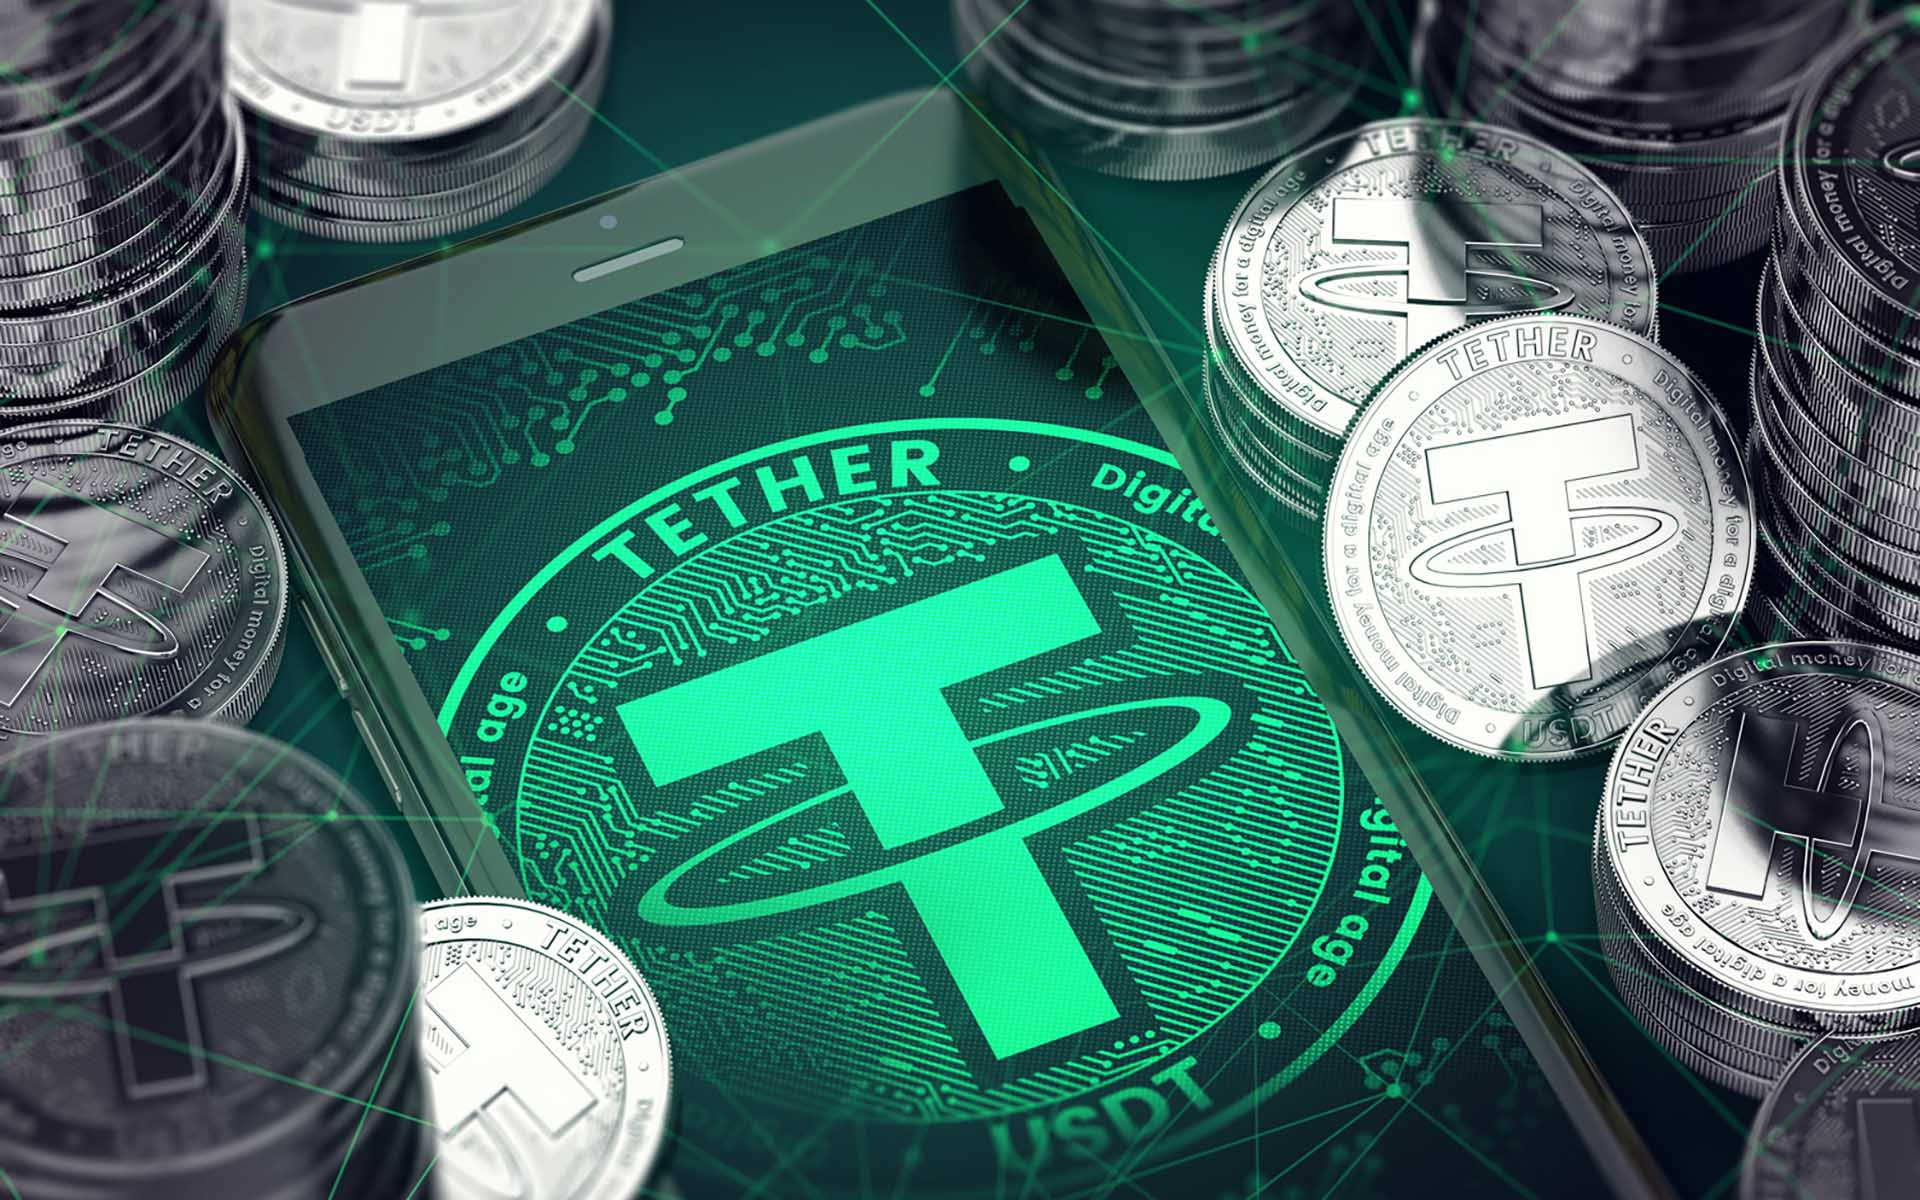 Bitcoin Price was Manipulated by Tether, Researchers Claim